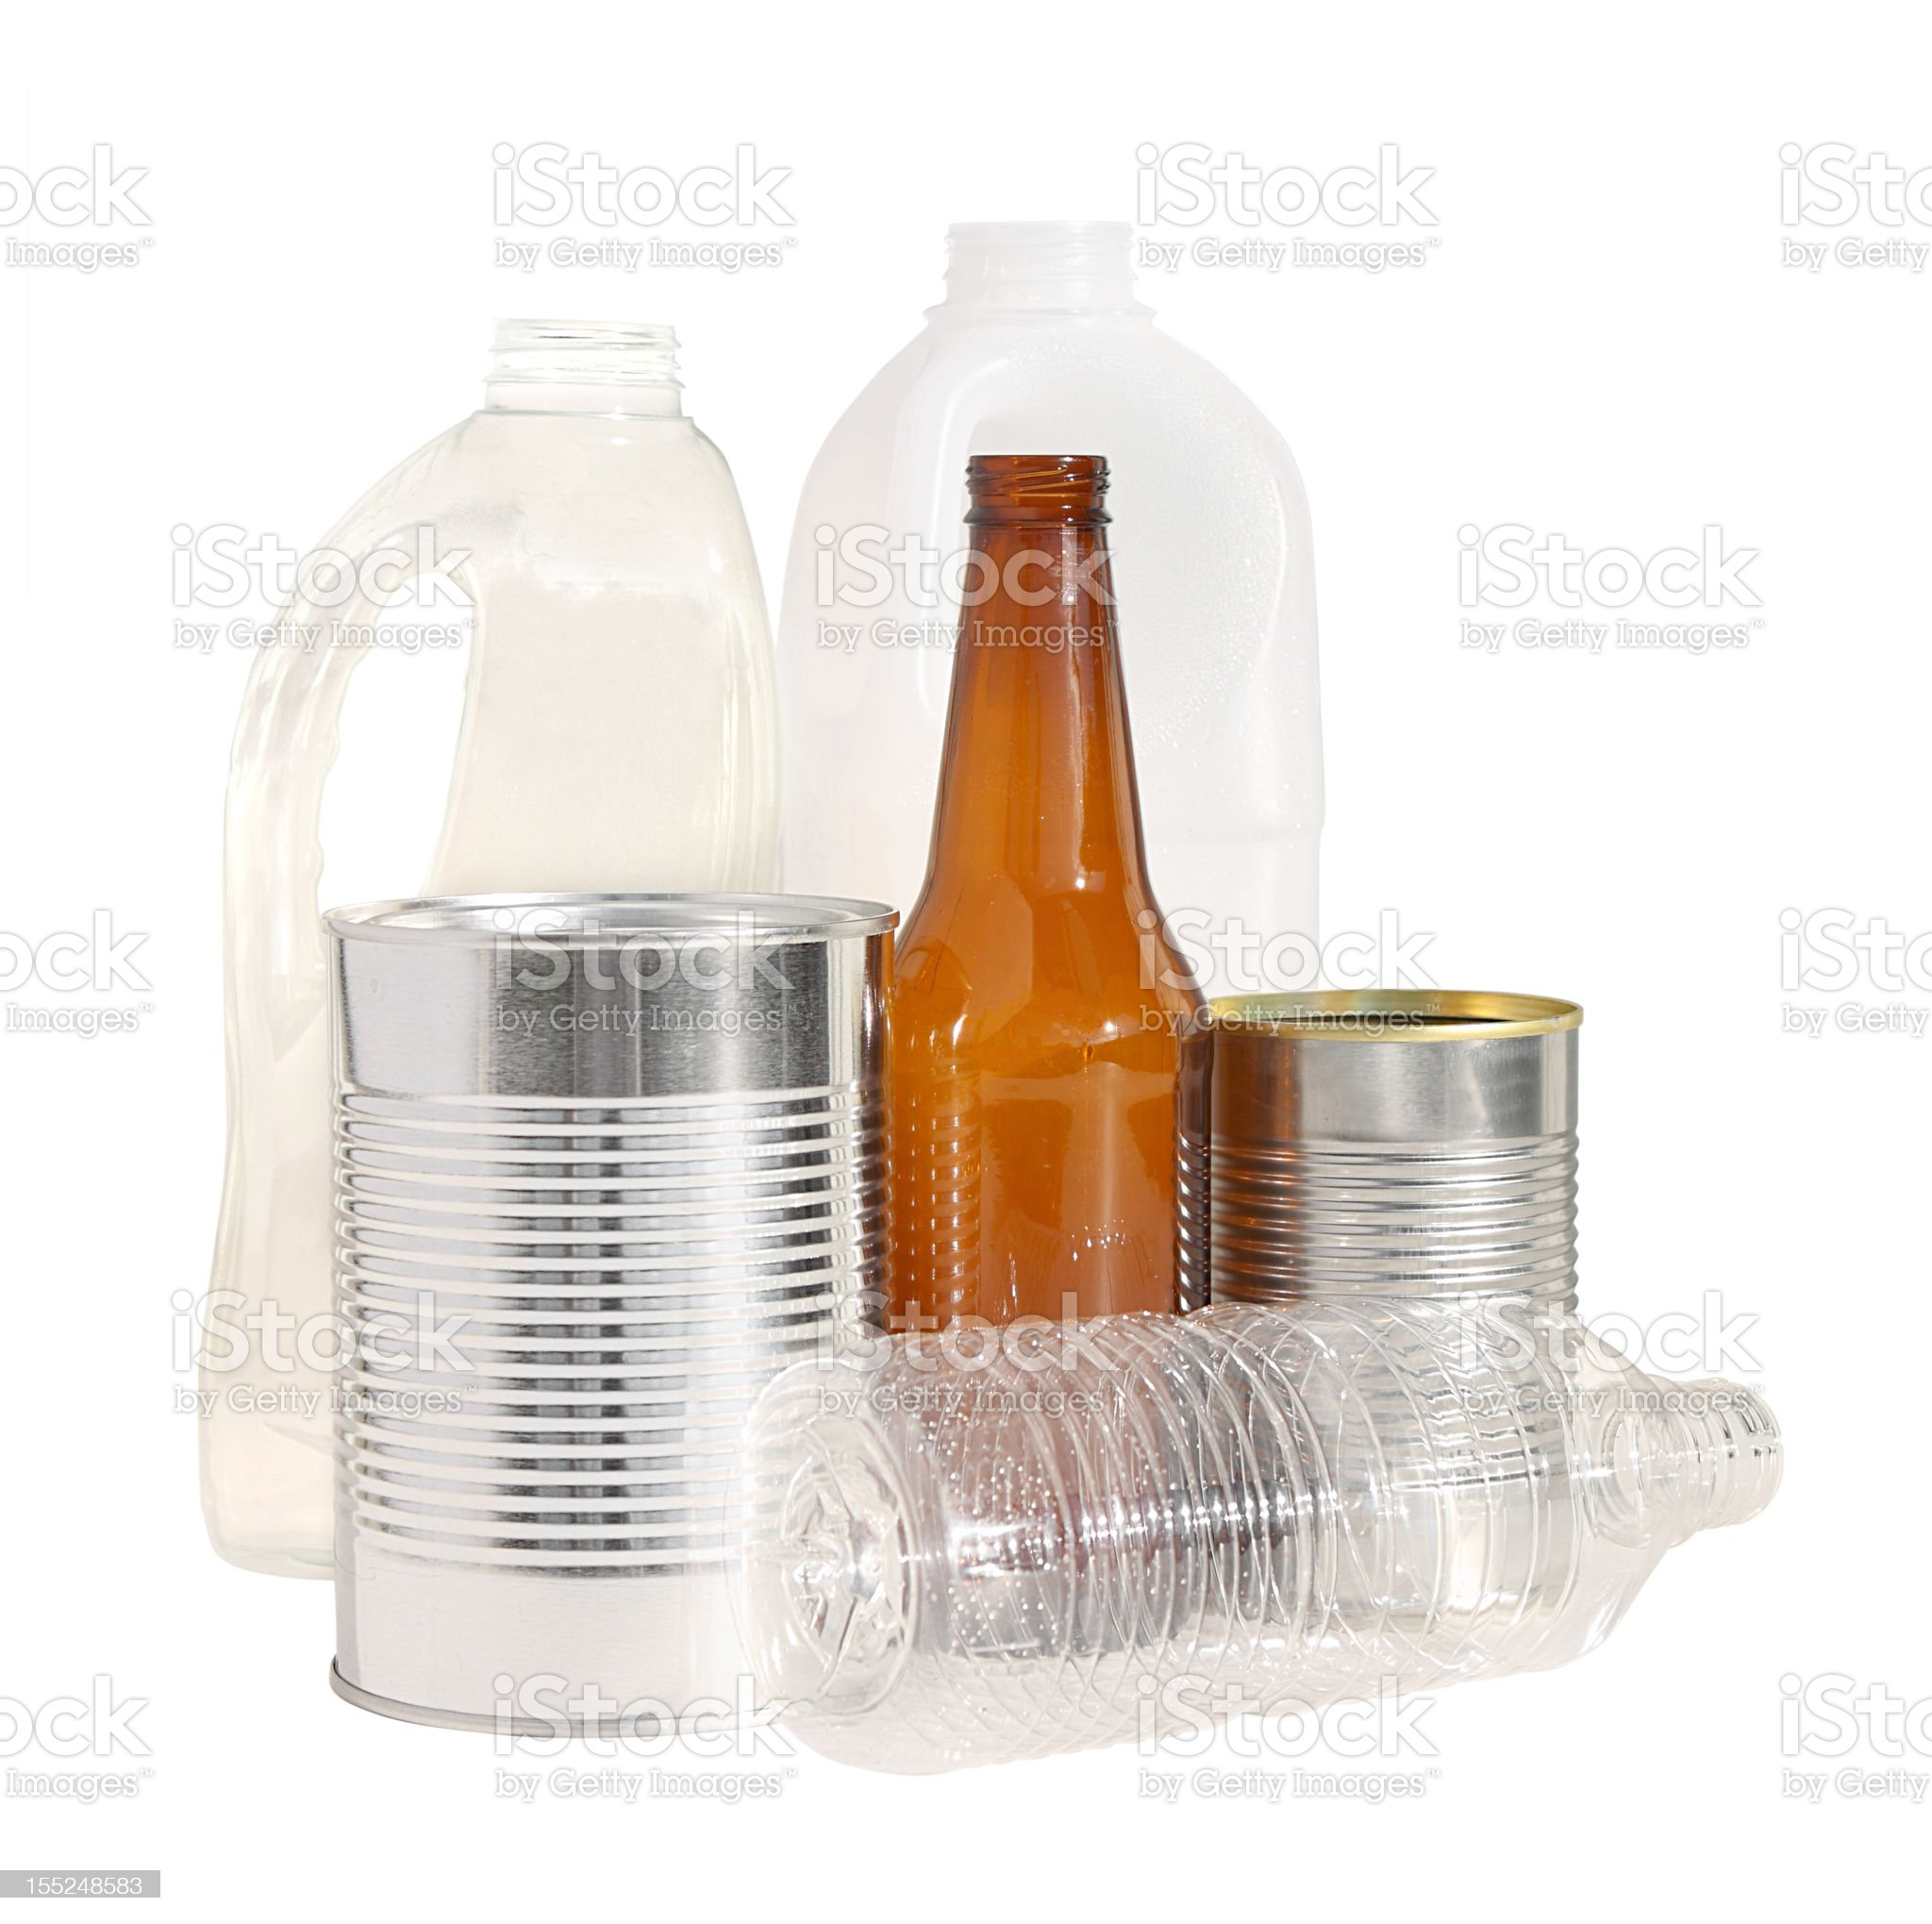 Recyclable material isolated w/ clipping path royalty-free stock photo